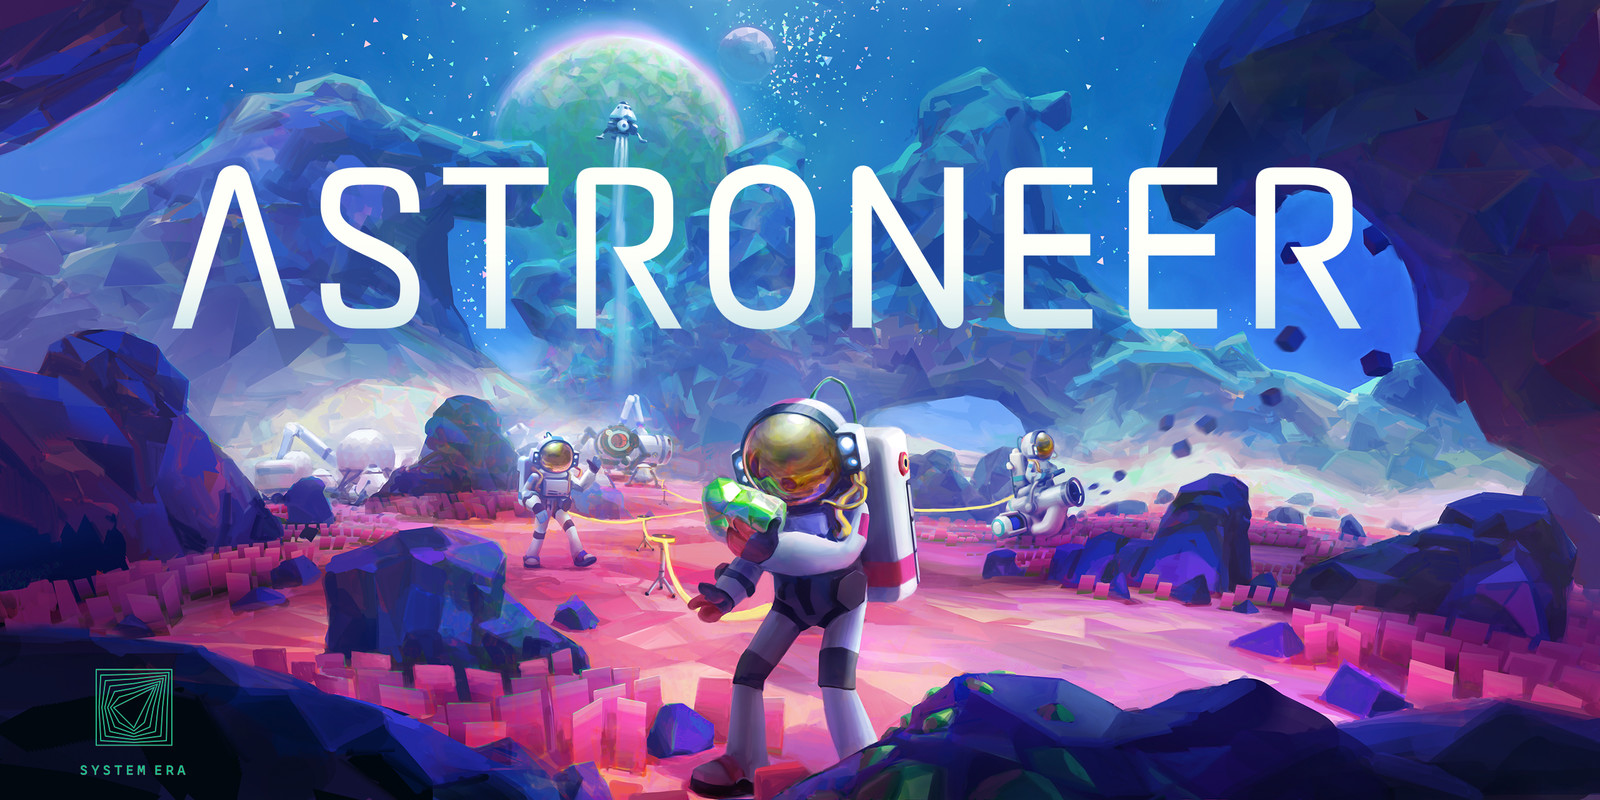 Astroneer Promotional art